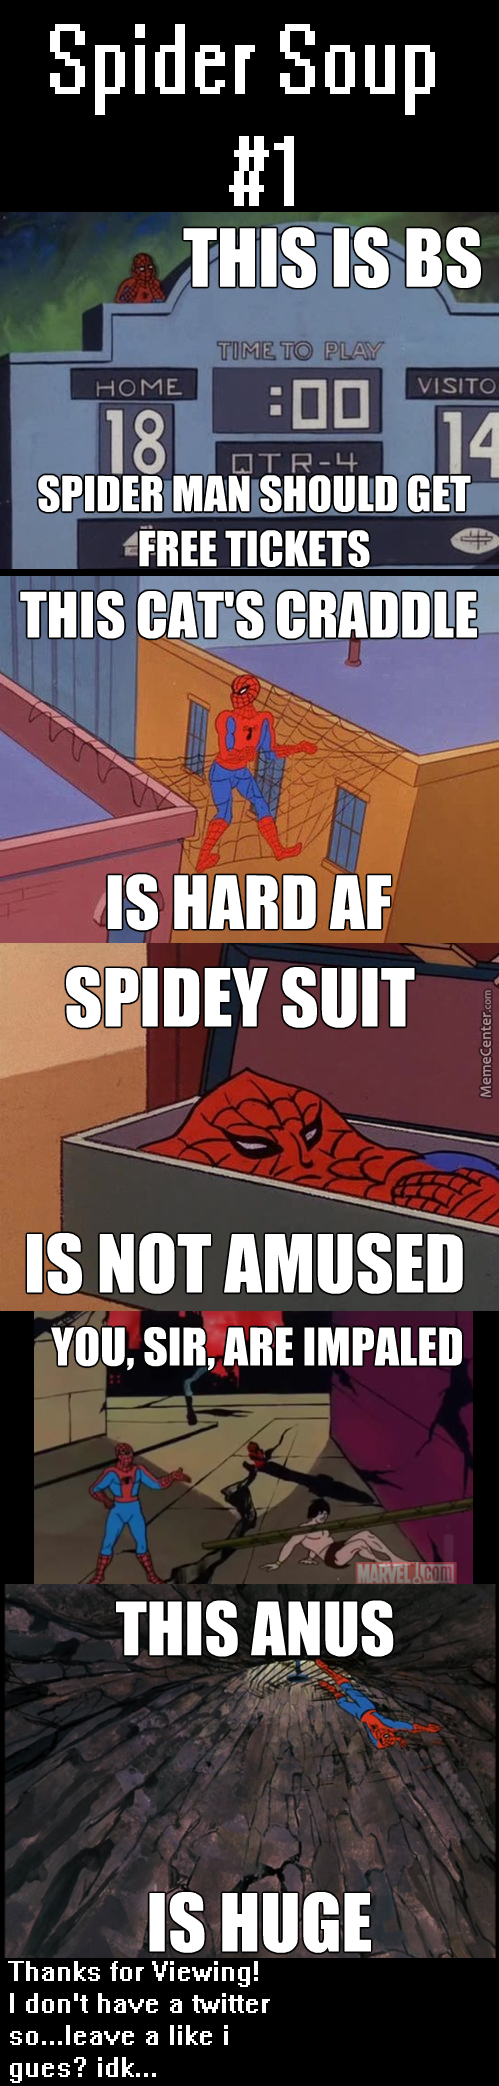 70's Spider Man Is Still A Popular Meme, Right?